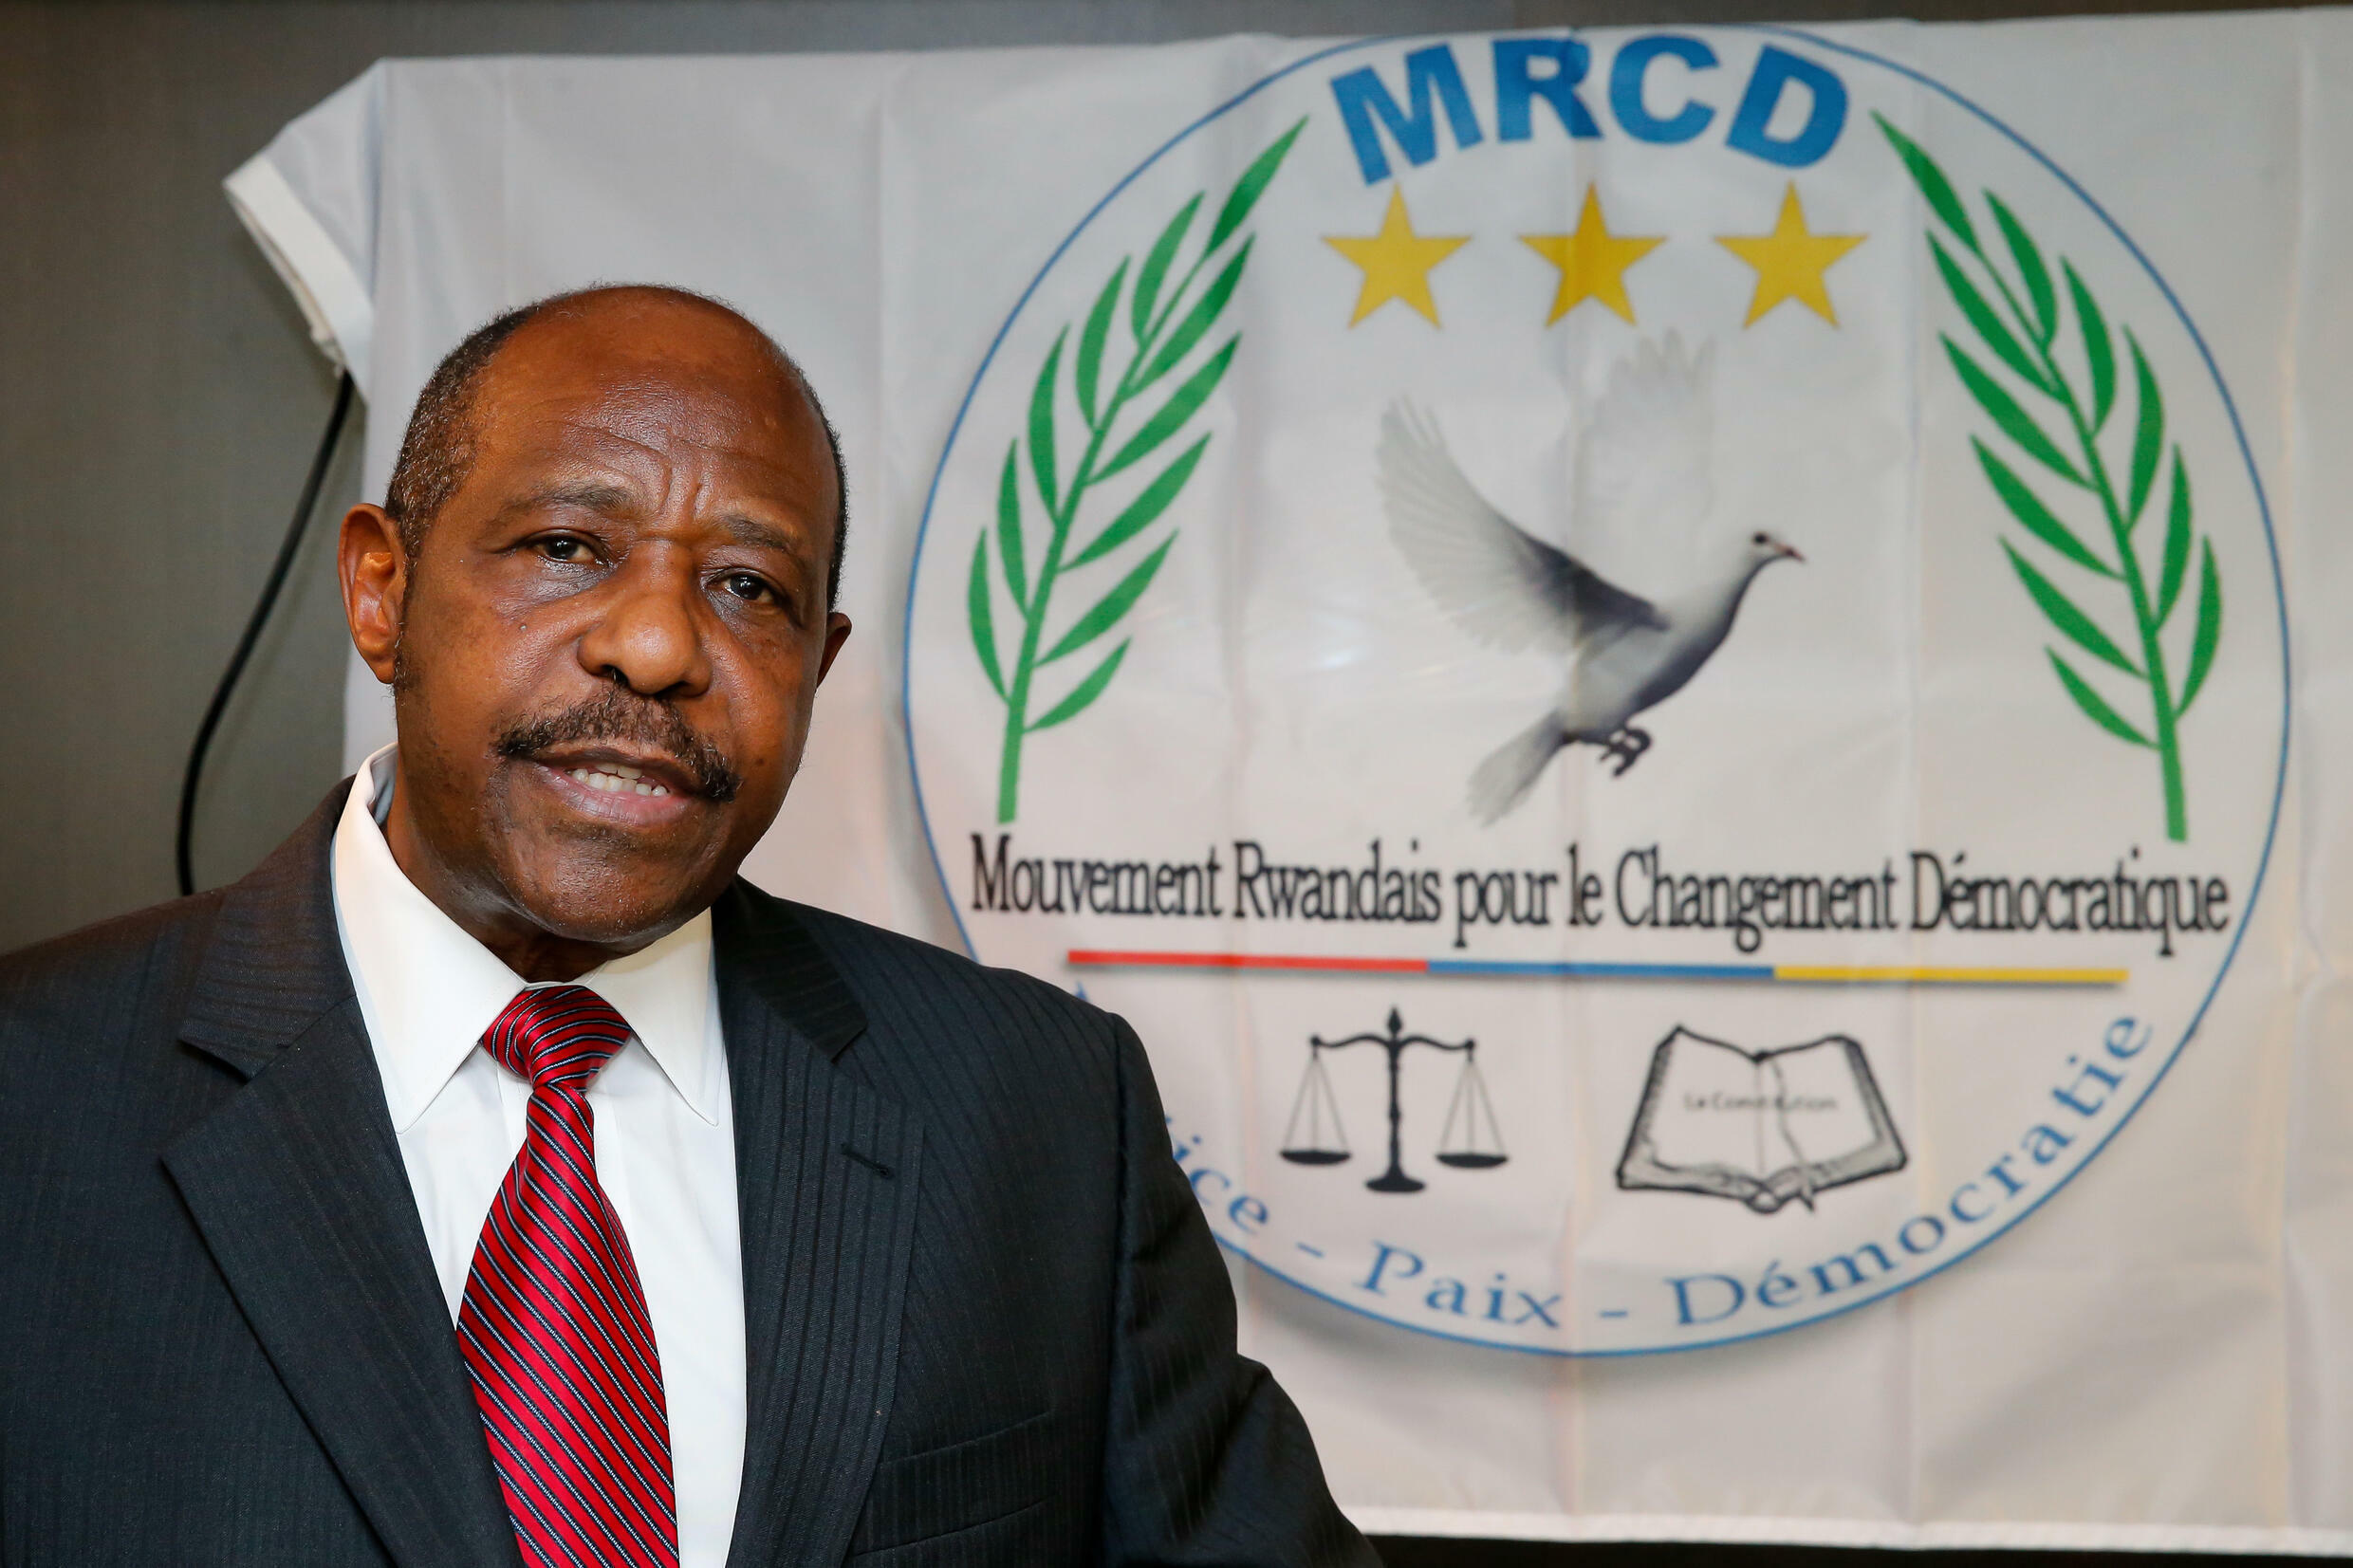 Paul Rusesabagina angered the Rwandan government by using the Hollywood limelight to crusade for political change in his tightly controlled homeland